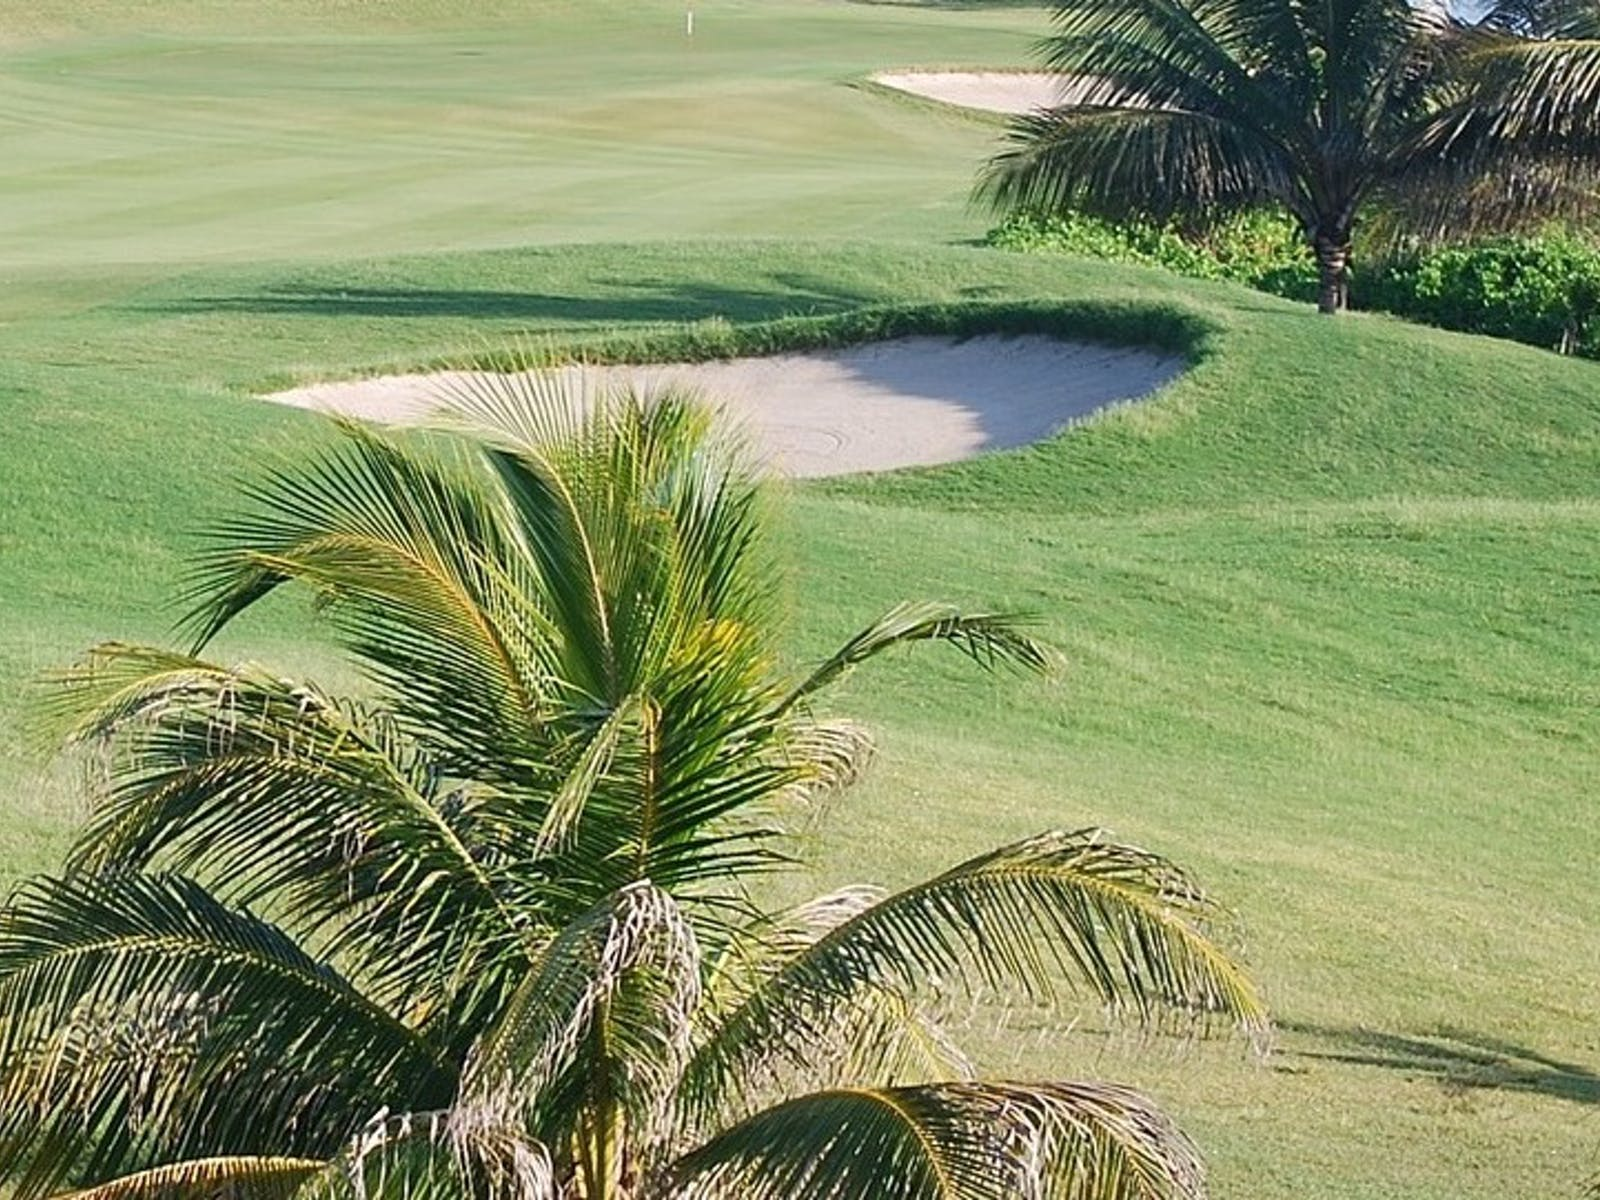 Jamaica golf course in Hawaii